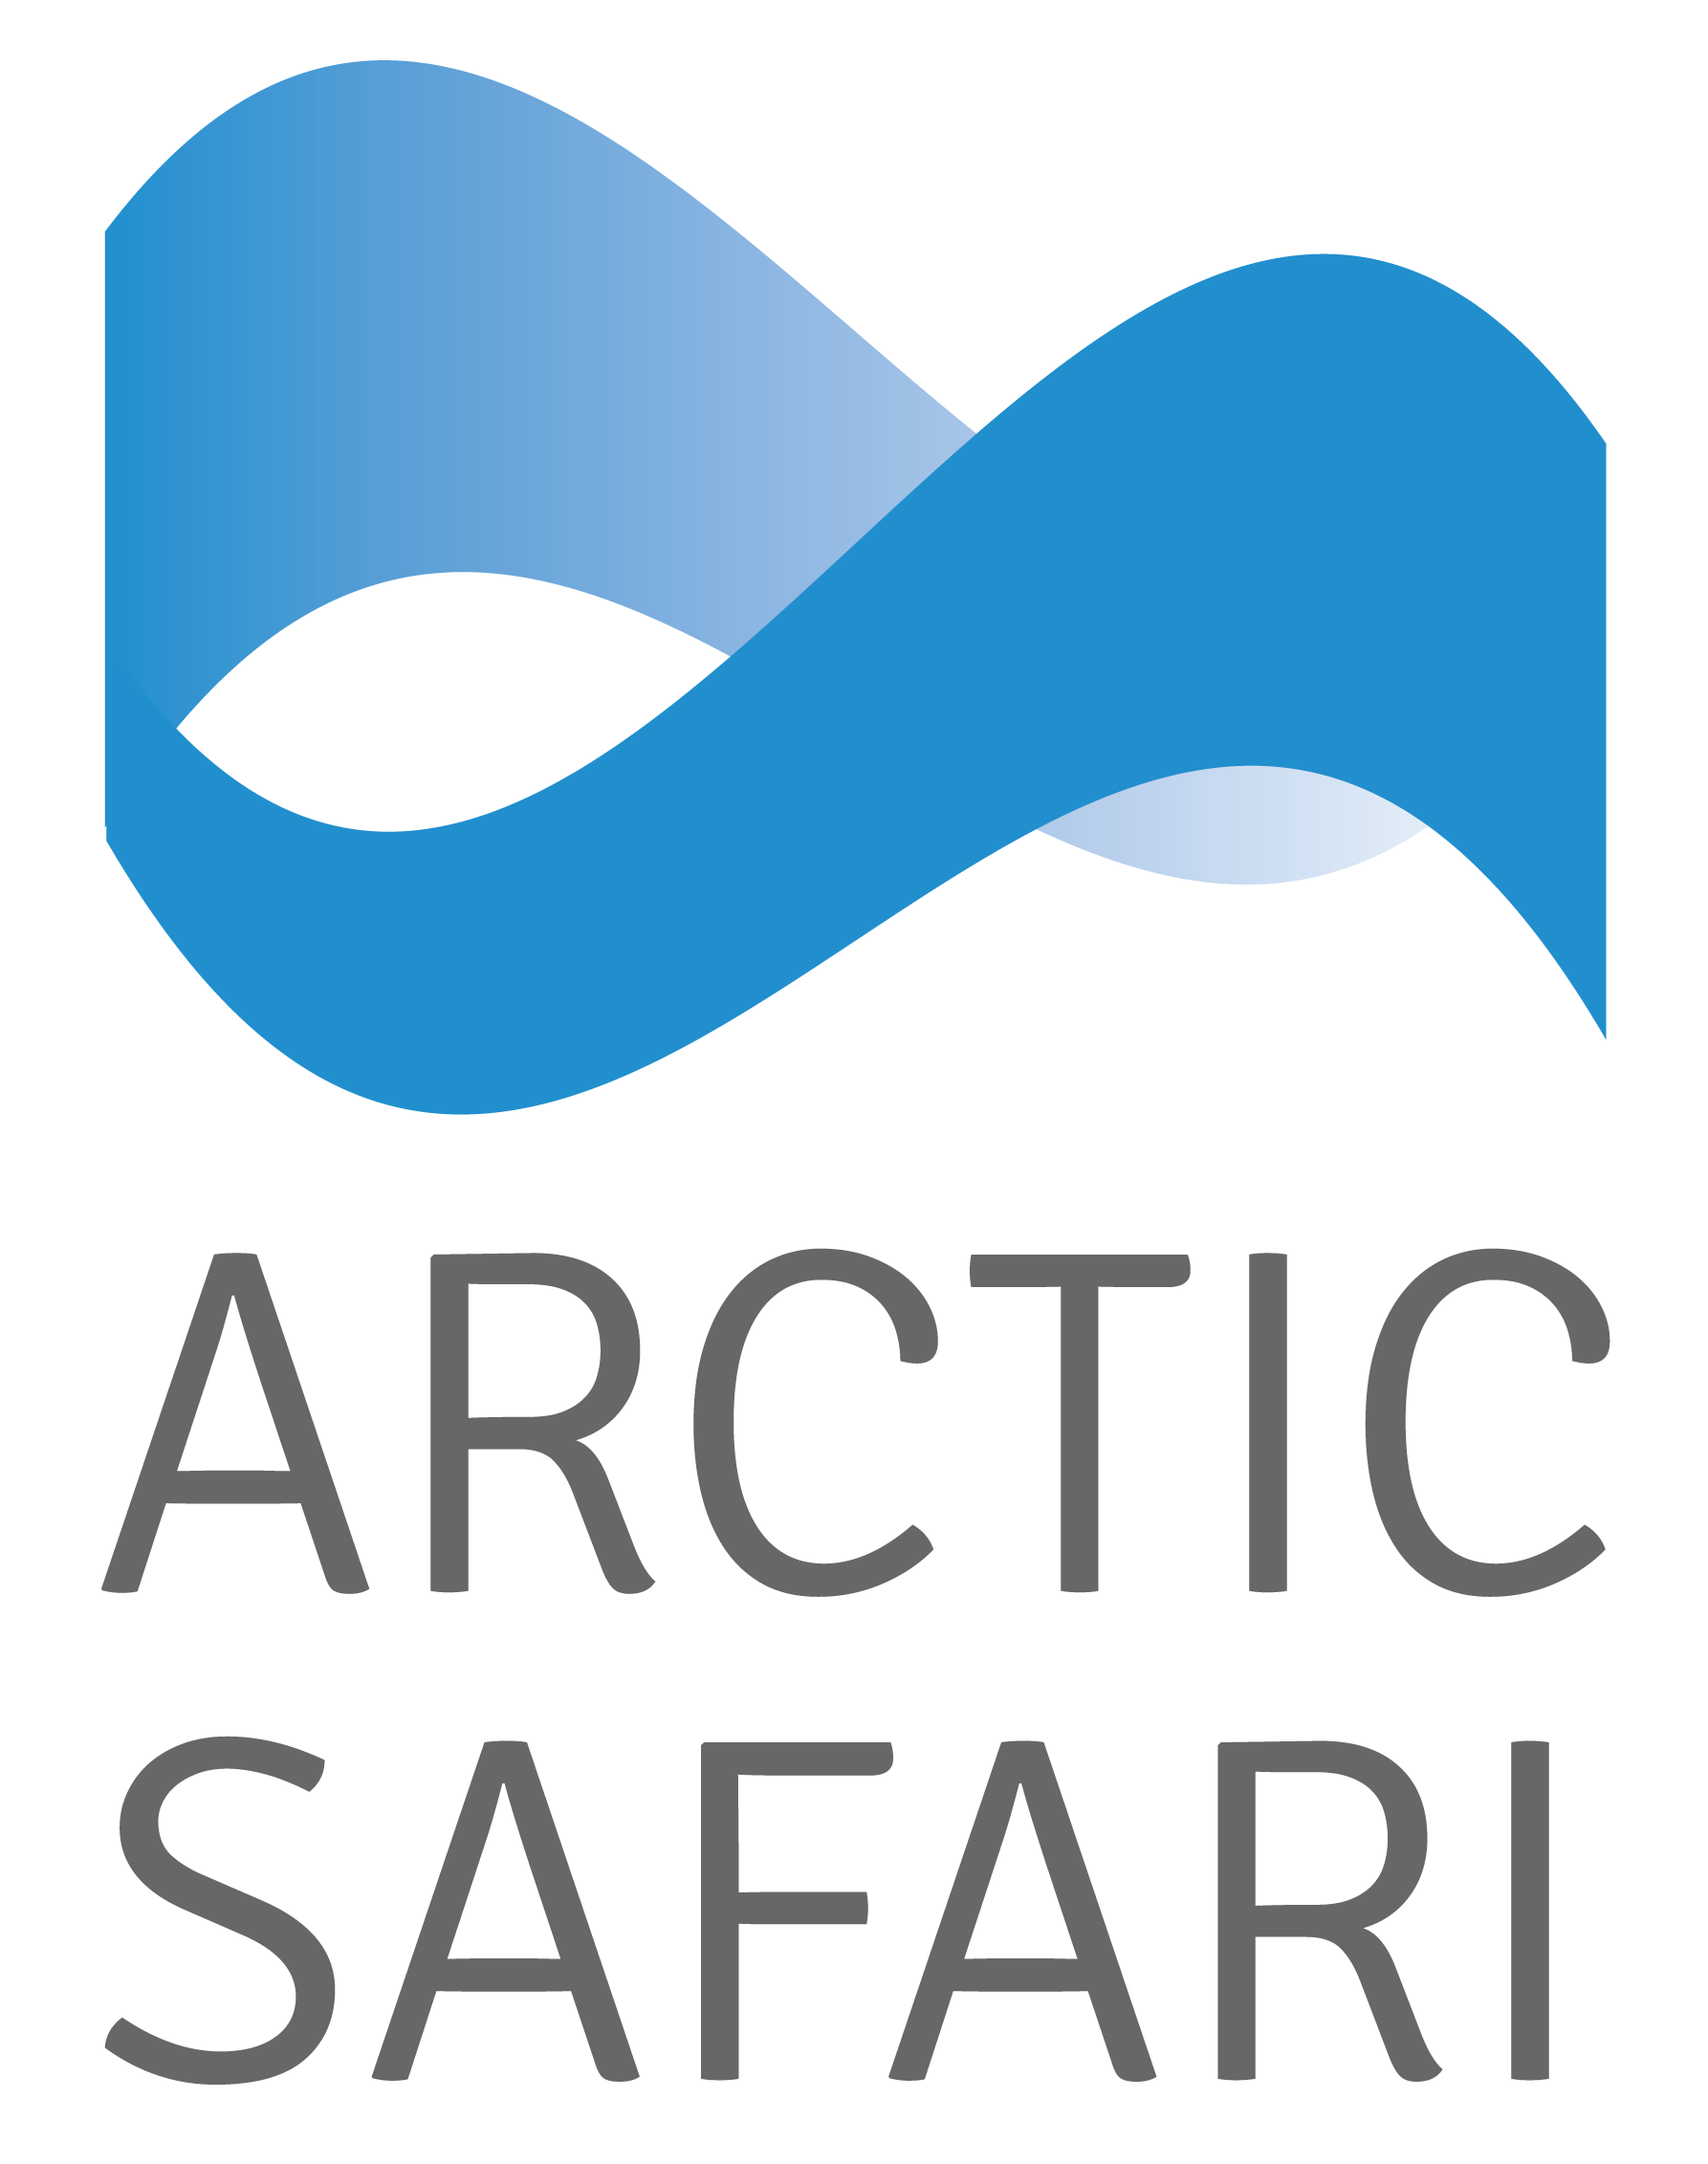 Arctic Safari